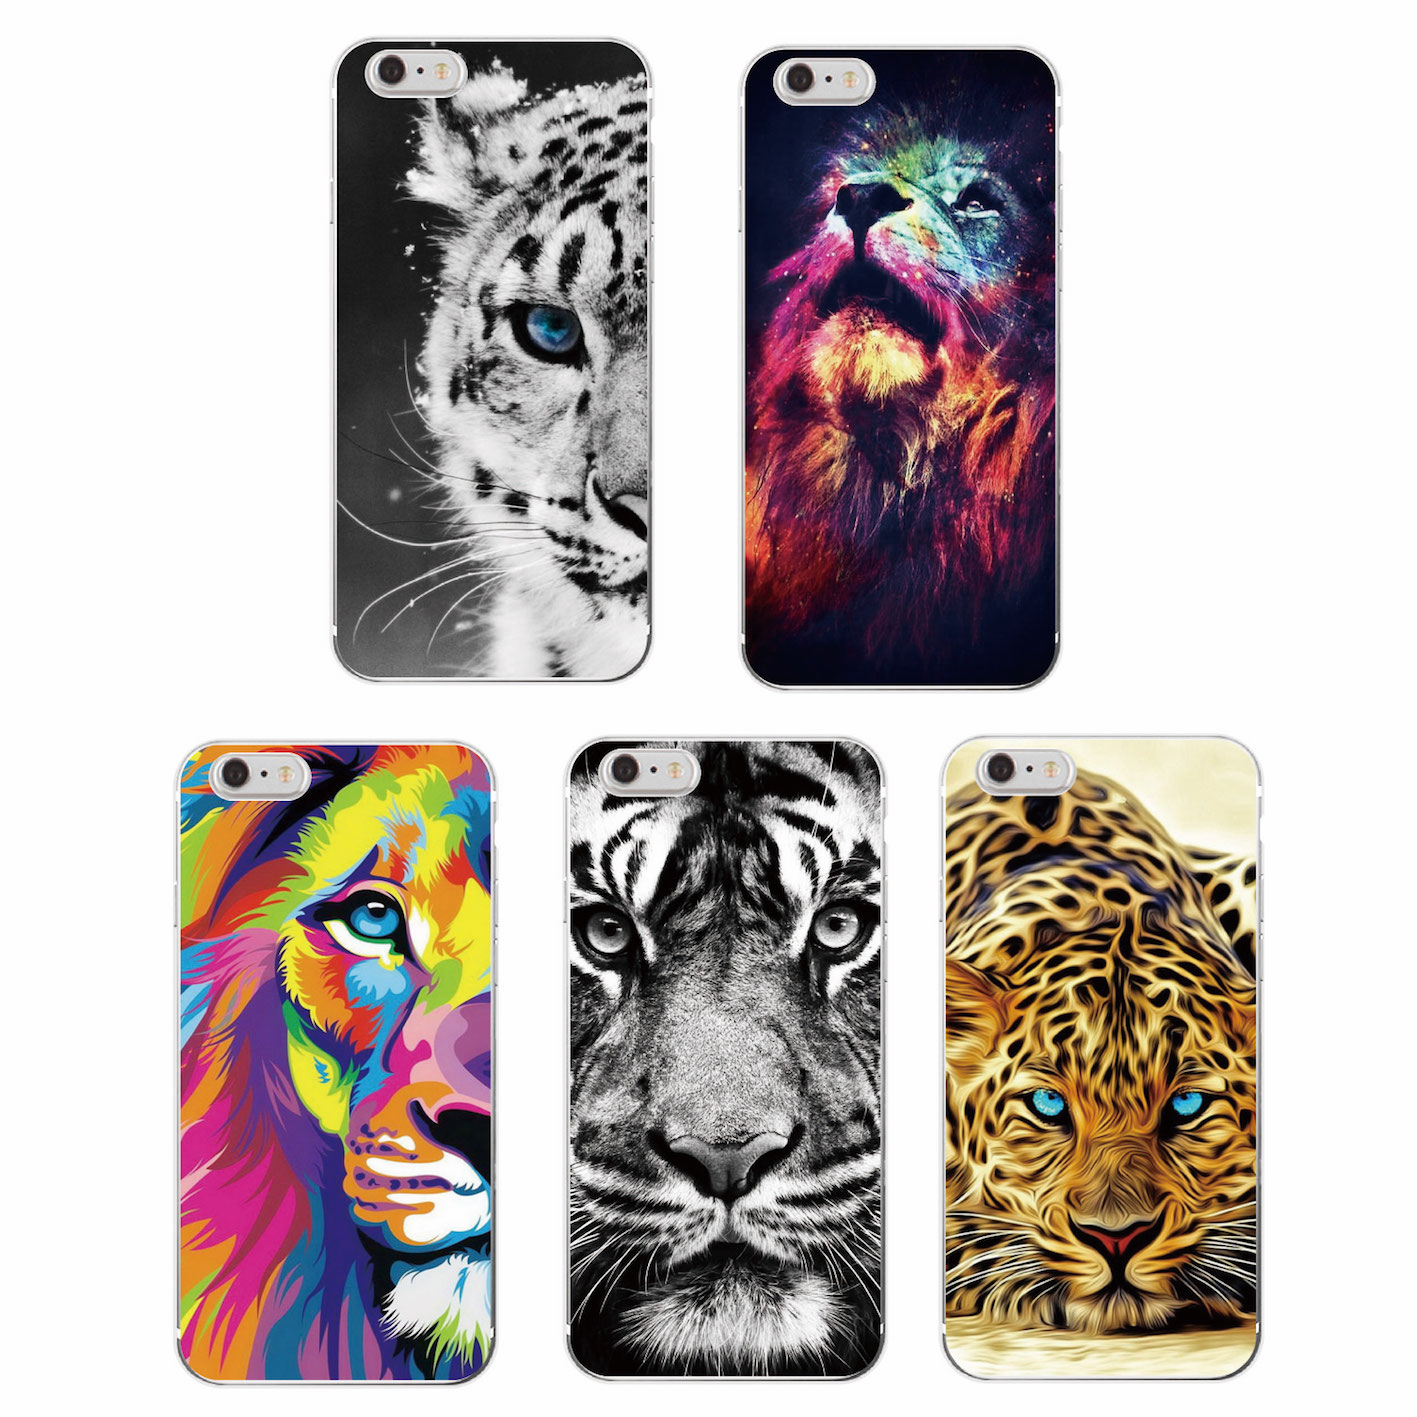 Panairi Tiger Fashion Lion Leopard Soft Case Coque Funds për iPhone 11 7 7Plus 6 6S 5S 8 8Plus X XS Max SAMSUNG GALSXY S8 S8P